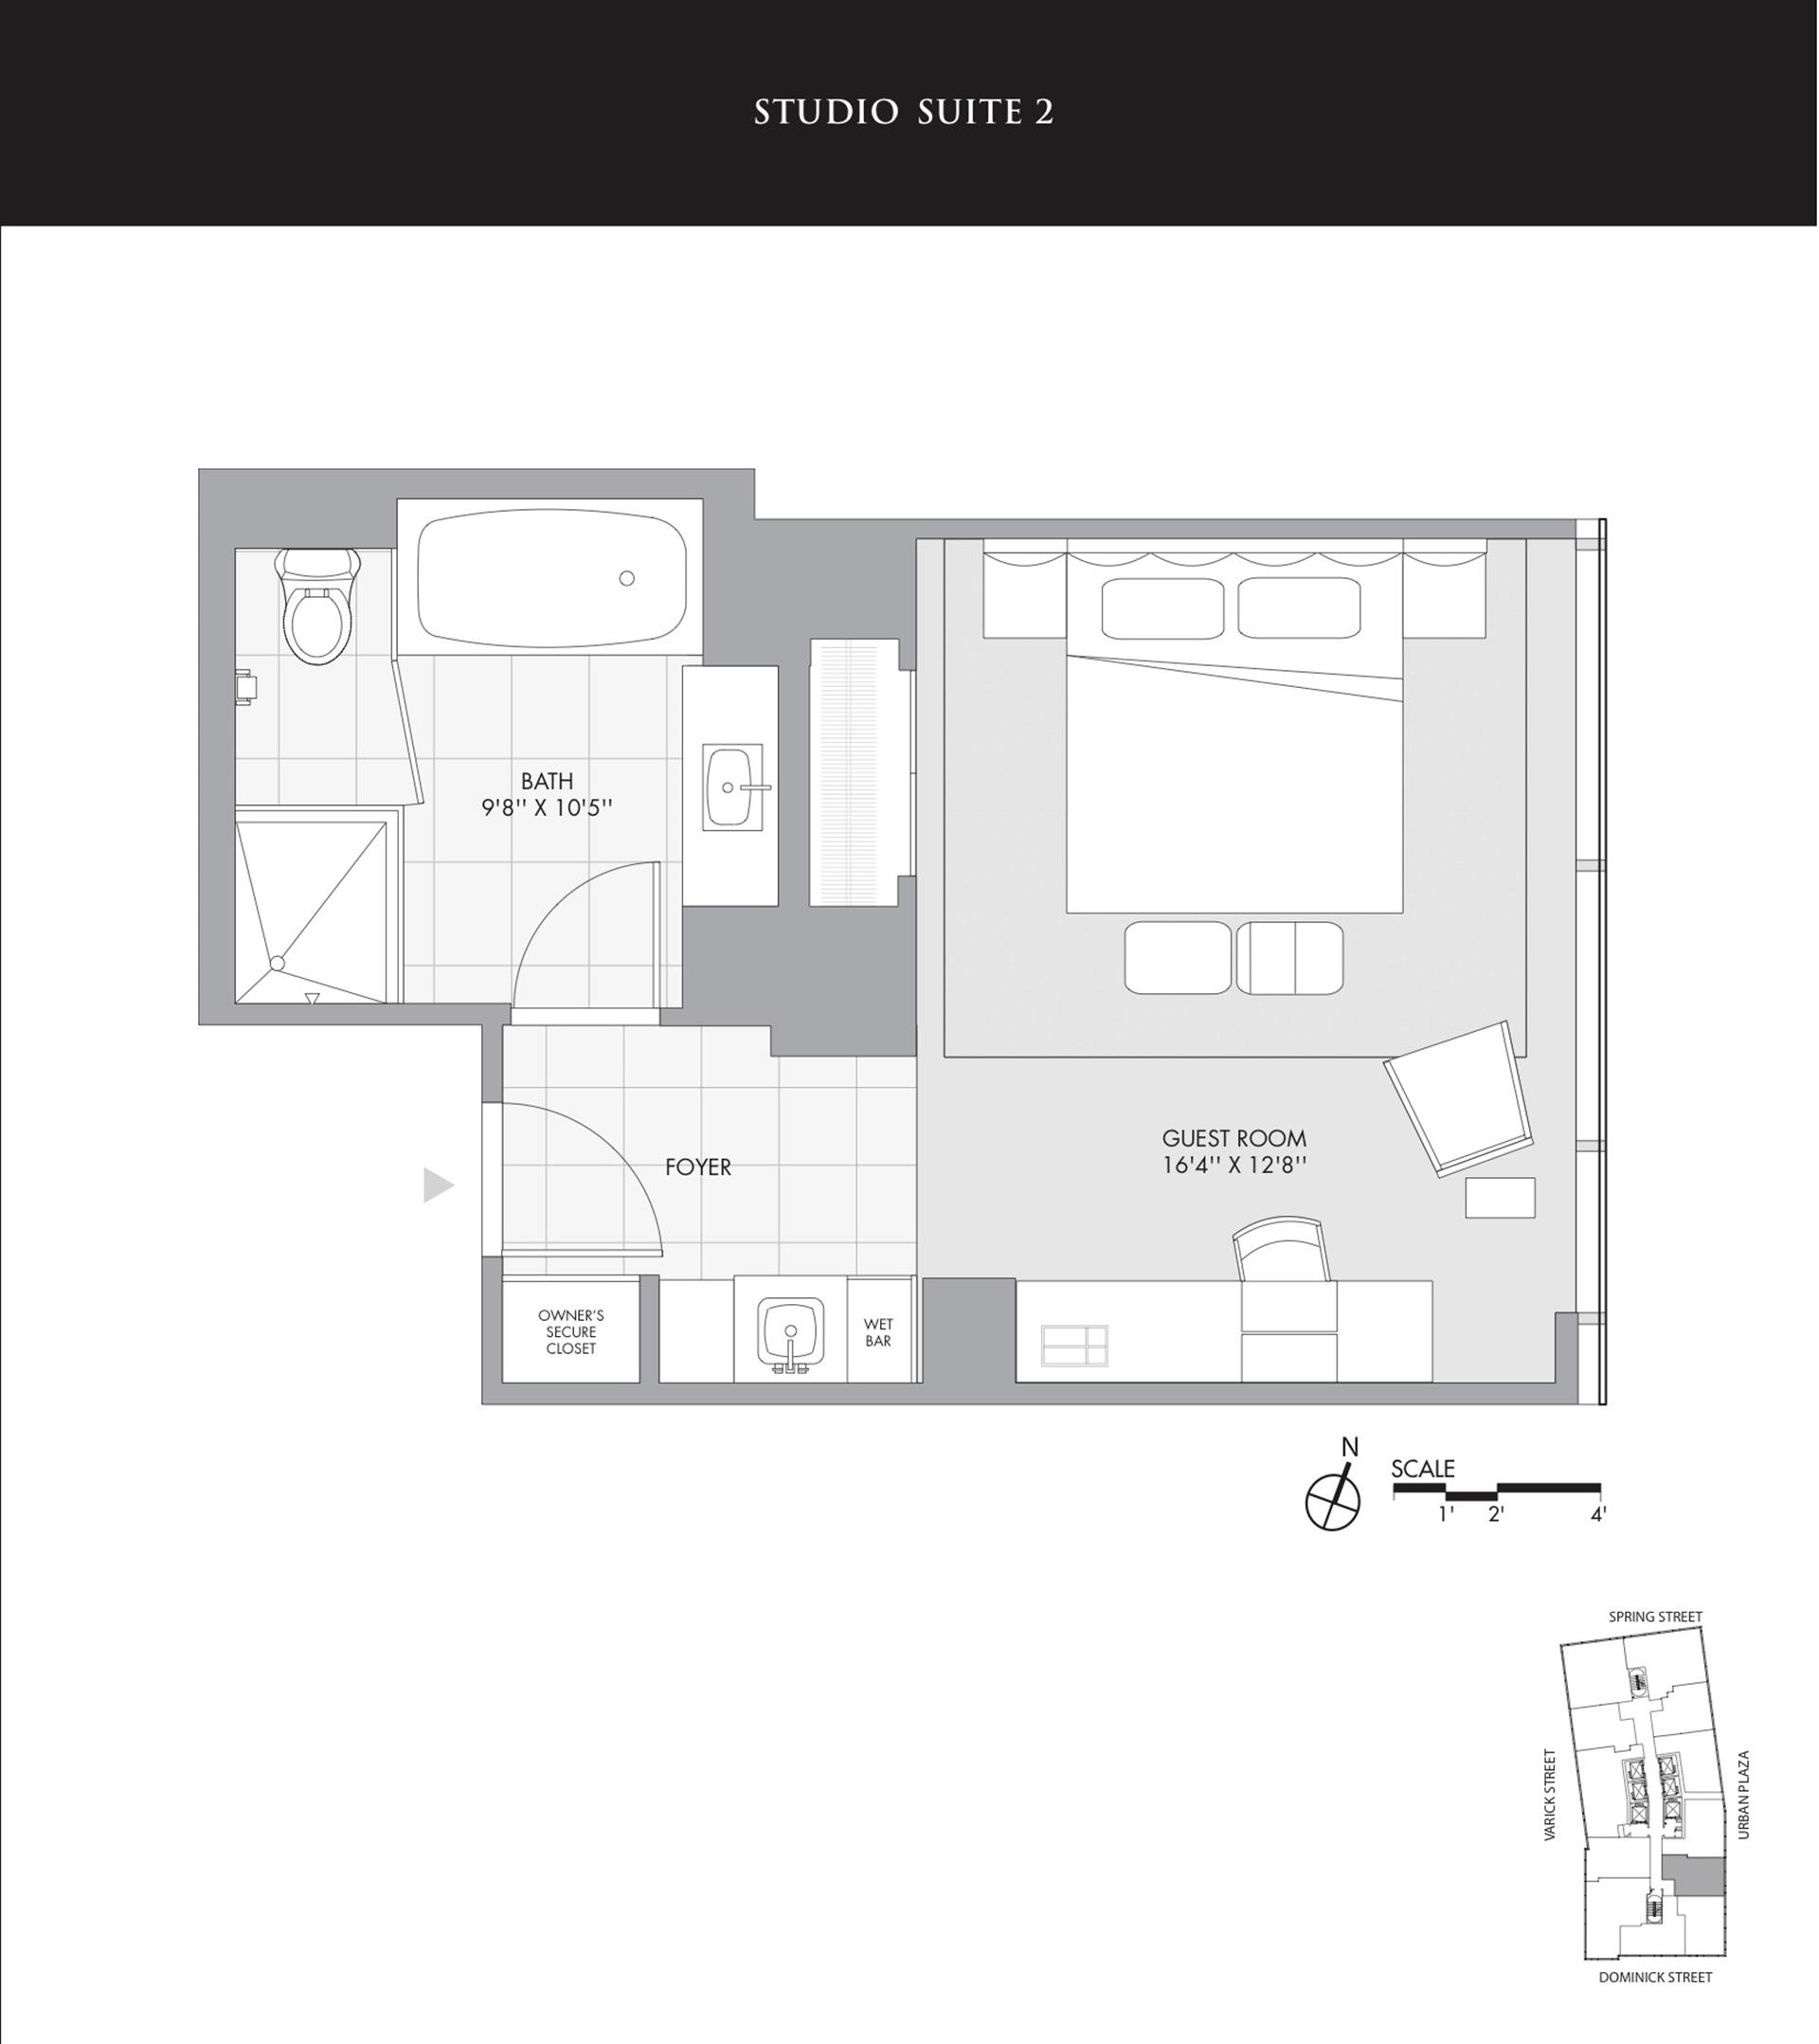 Floor plan of The Dominick Hotel, 246 Spring St, 1402 - SoHo - Nolita, New York